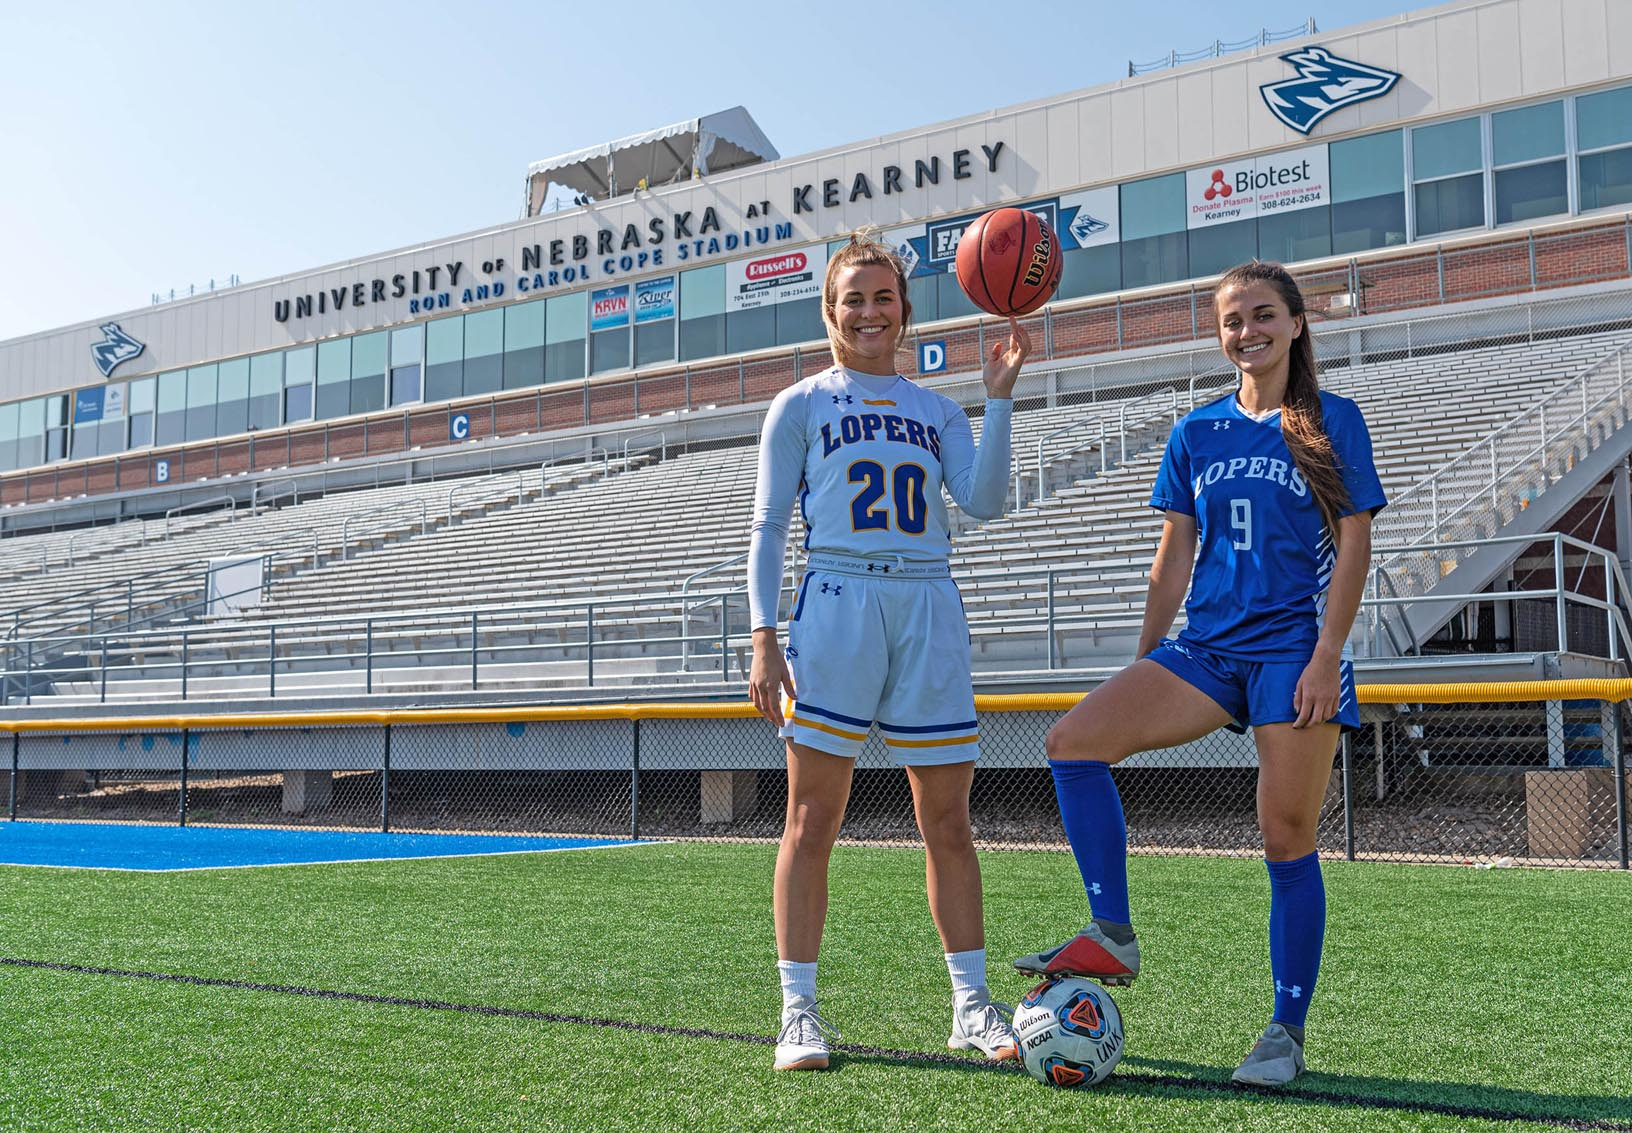 Klaire and Kassidy Kirsch are enjoying every moment of their time together at UNK. Klaire, a junior, is a starting guard on the UNK women's basketball team and Kassidy, a senior, is a forward and co-captain on the Loper soccer team. (Photo by Kosuke Yoshii, UNK Communications)